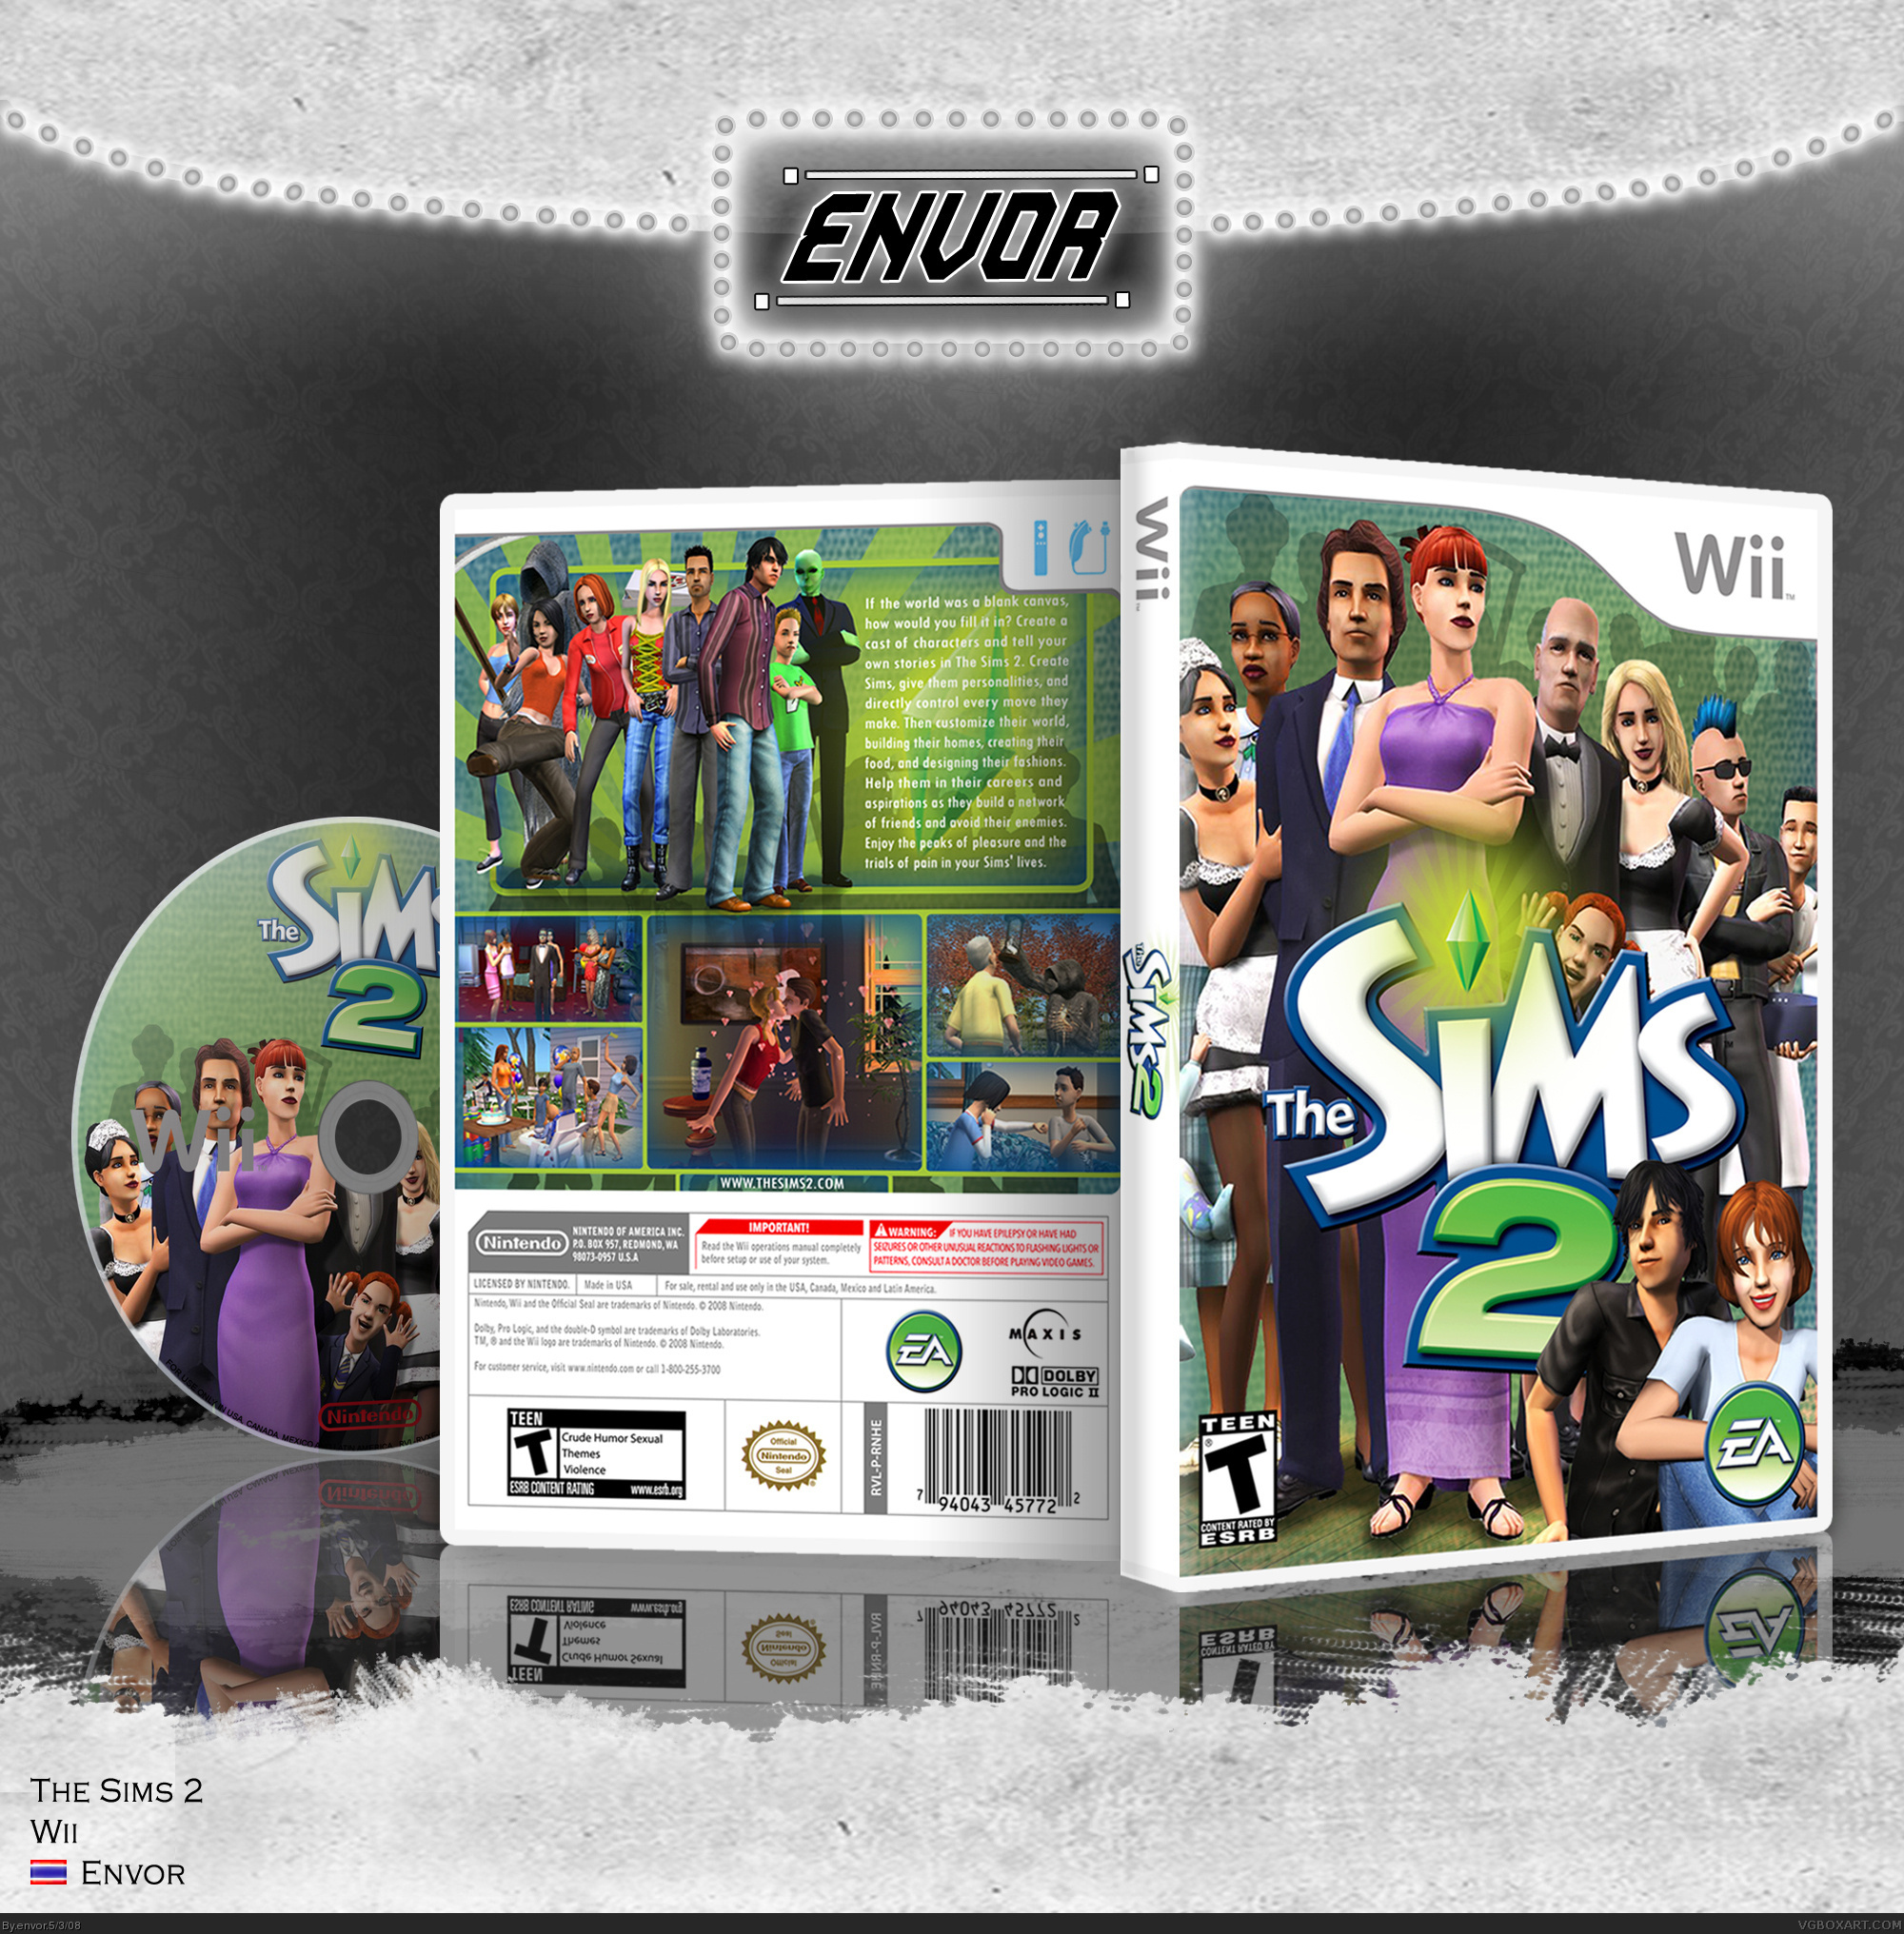 The Sims 2 box cover